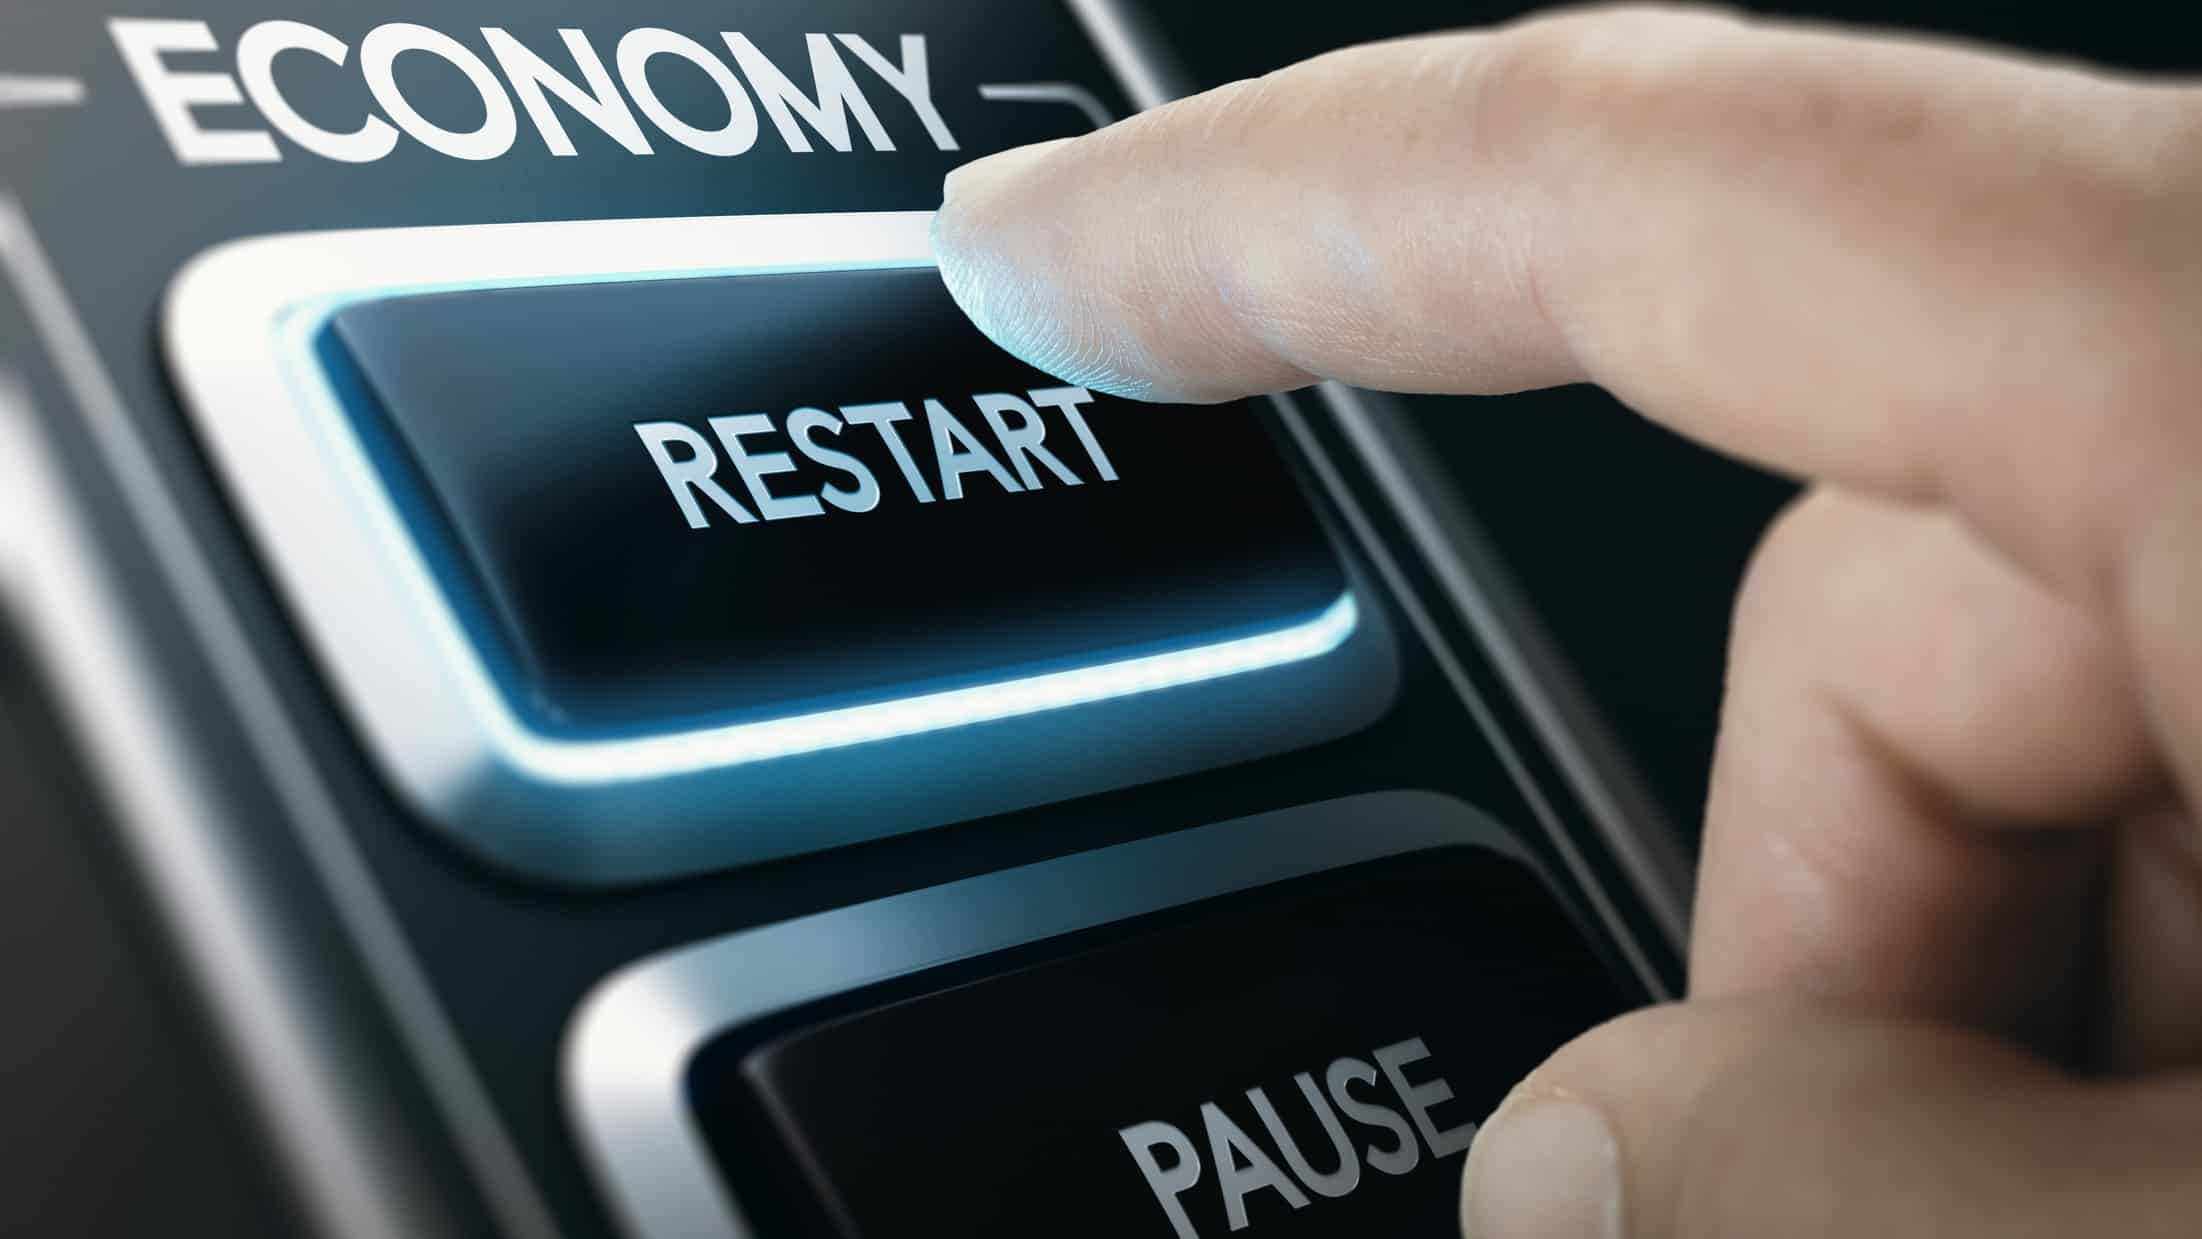 asx shares and the economy represented by finger pressing restart on a device titled economy